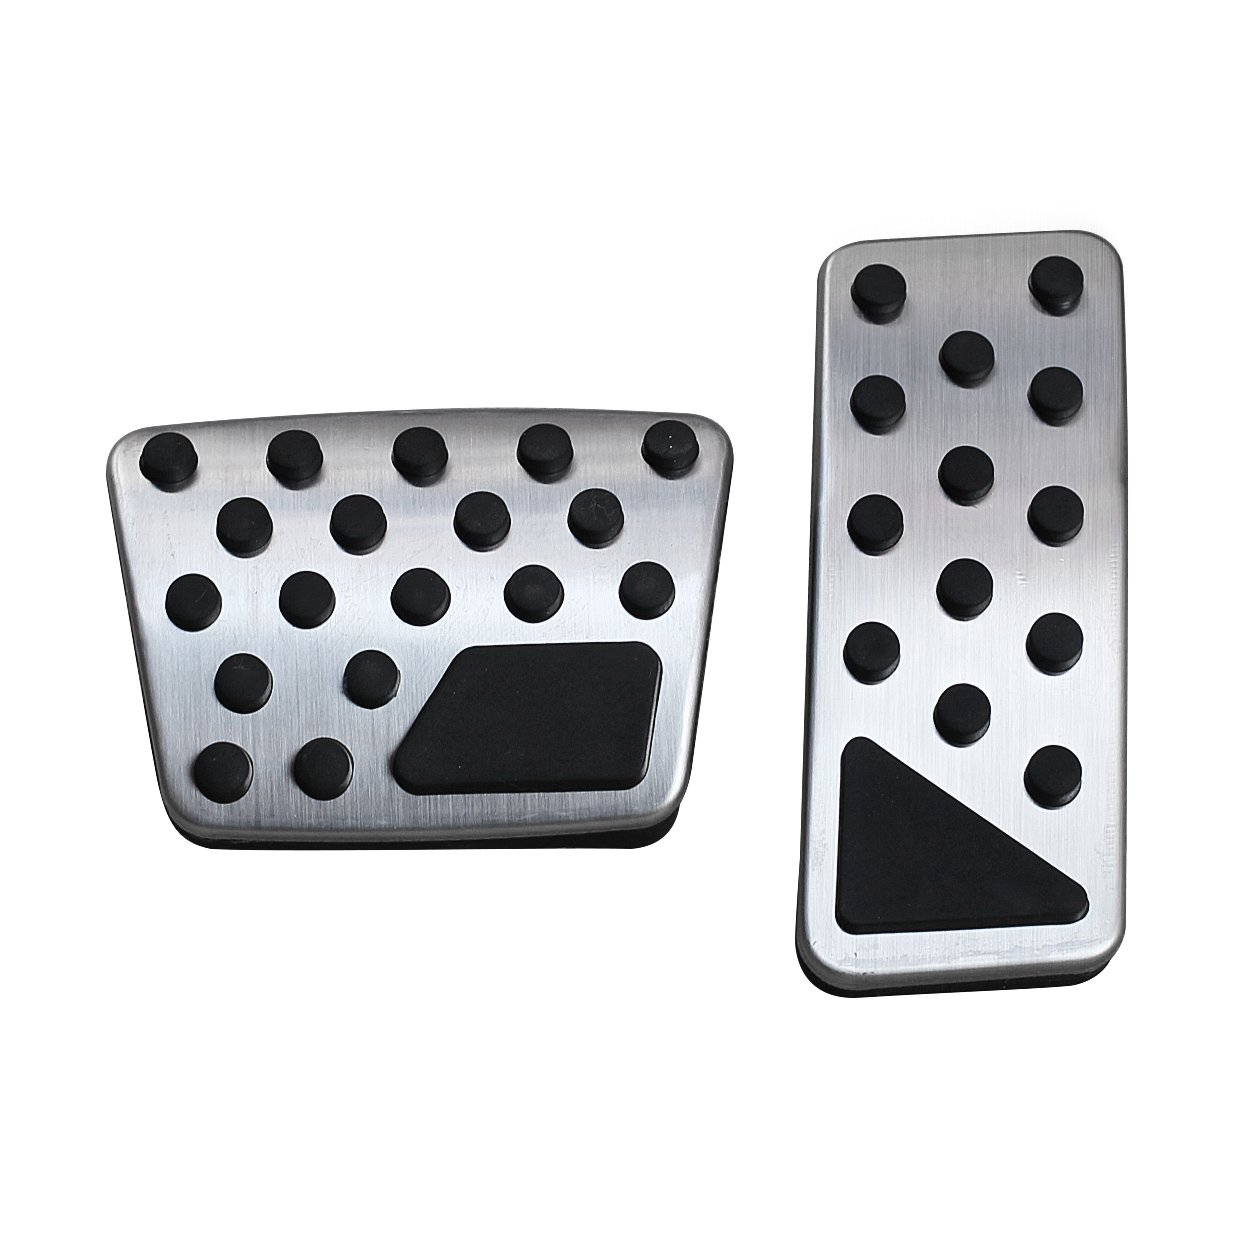 AutoBig Accelerator Brake Pedal Cover for Jeep Cherokee KL 2014-2019 No Drill Stainless Steel Gas Pad Plate Cap Risway